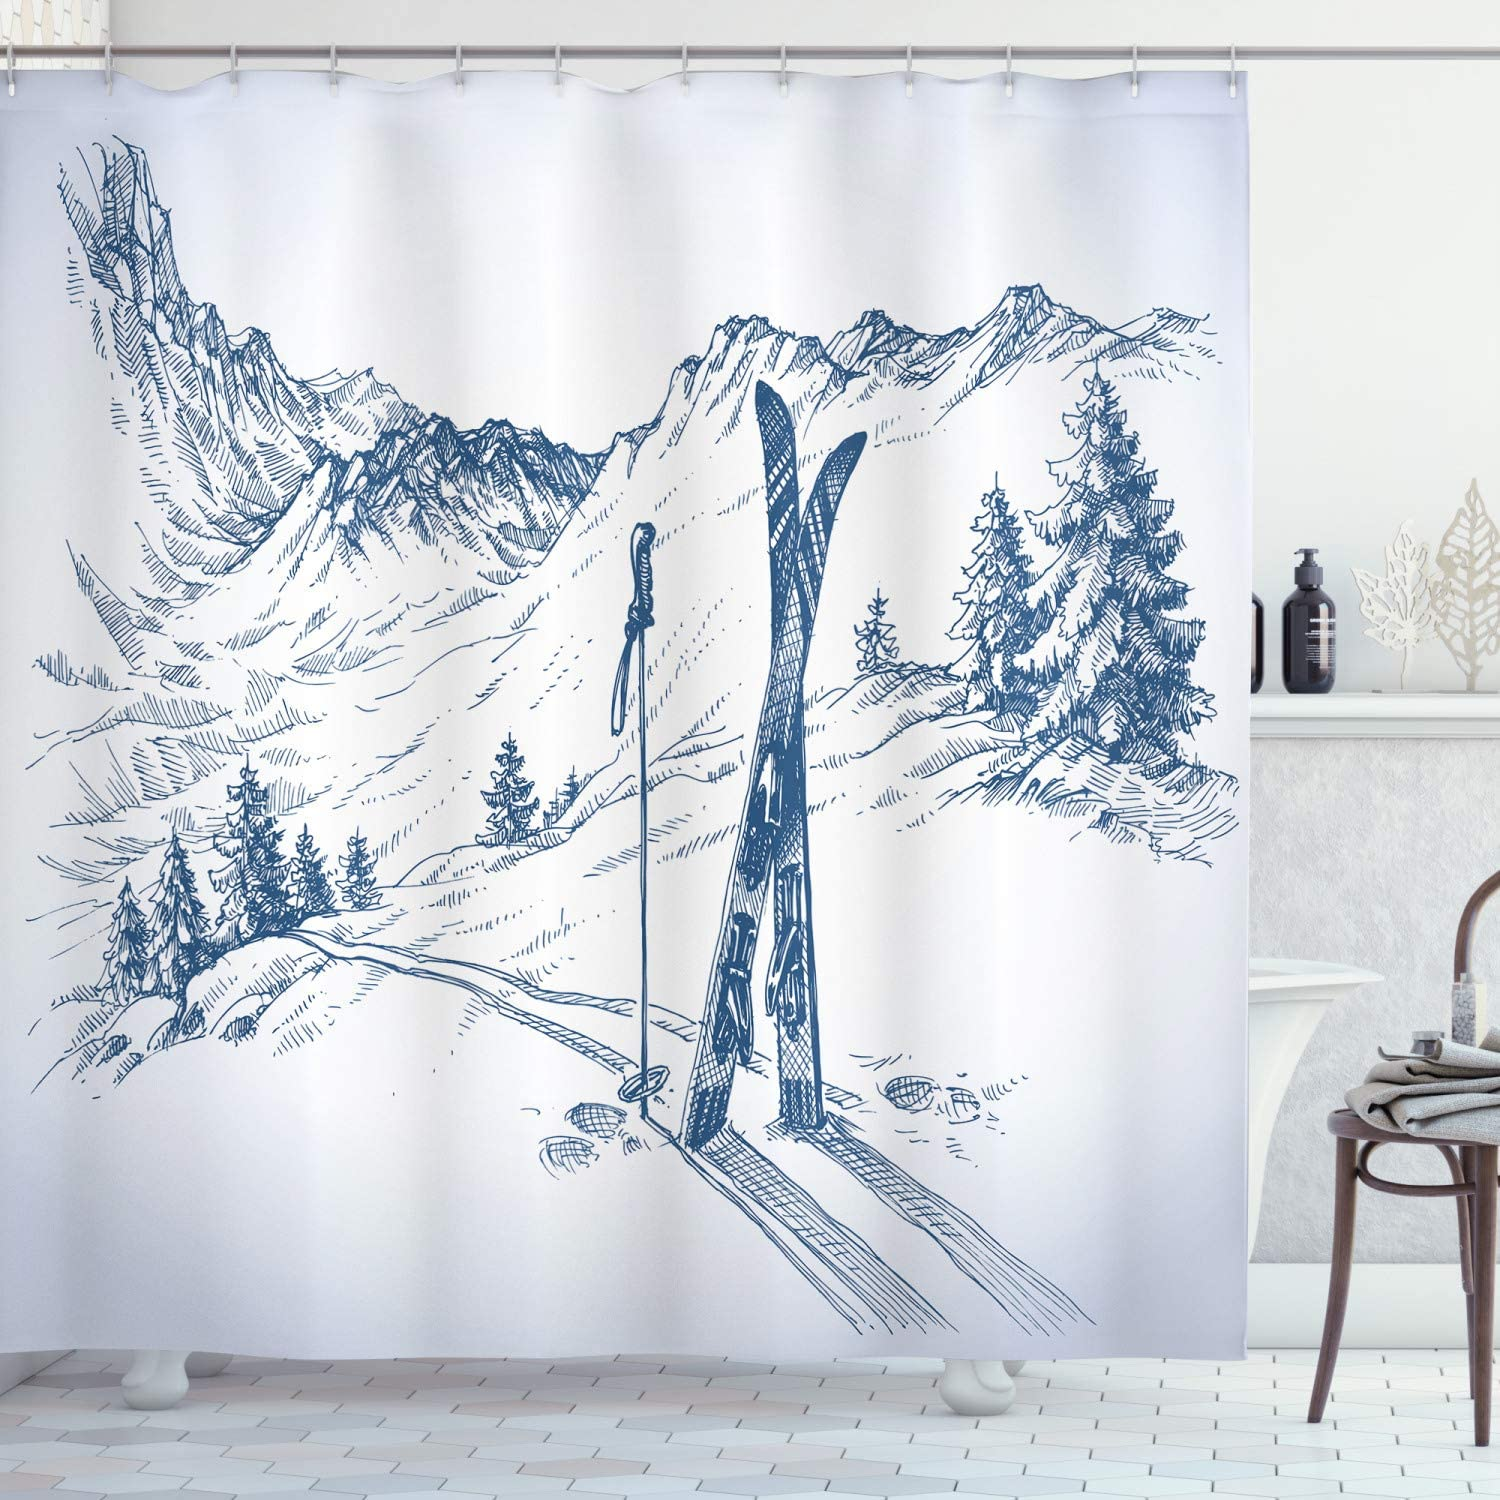 """Ambesonne Winter Shower Curtain, Sketchy Graphic of a Downhill with Ski Elements in Snow Relax Calm View, Cloth Fabric Bathroom Decor Set with Hooks, 70"""" Long, White Blue"""